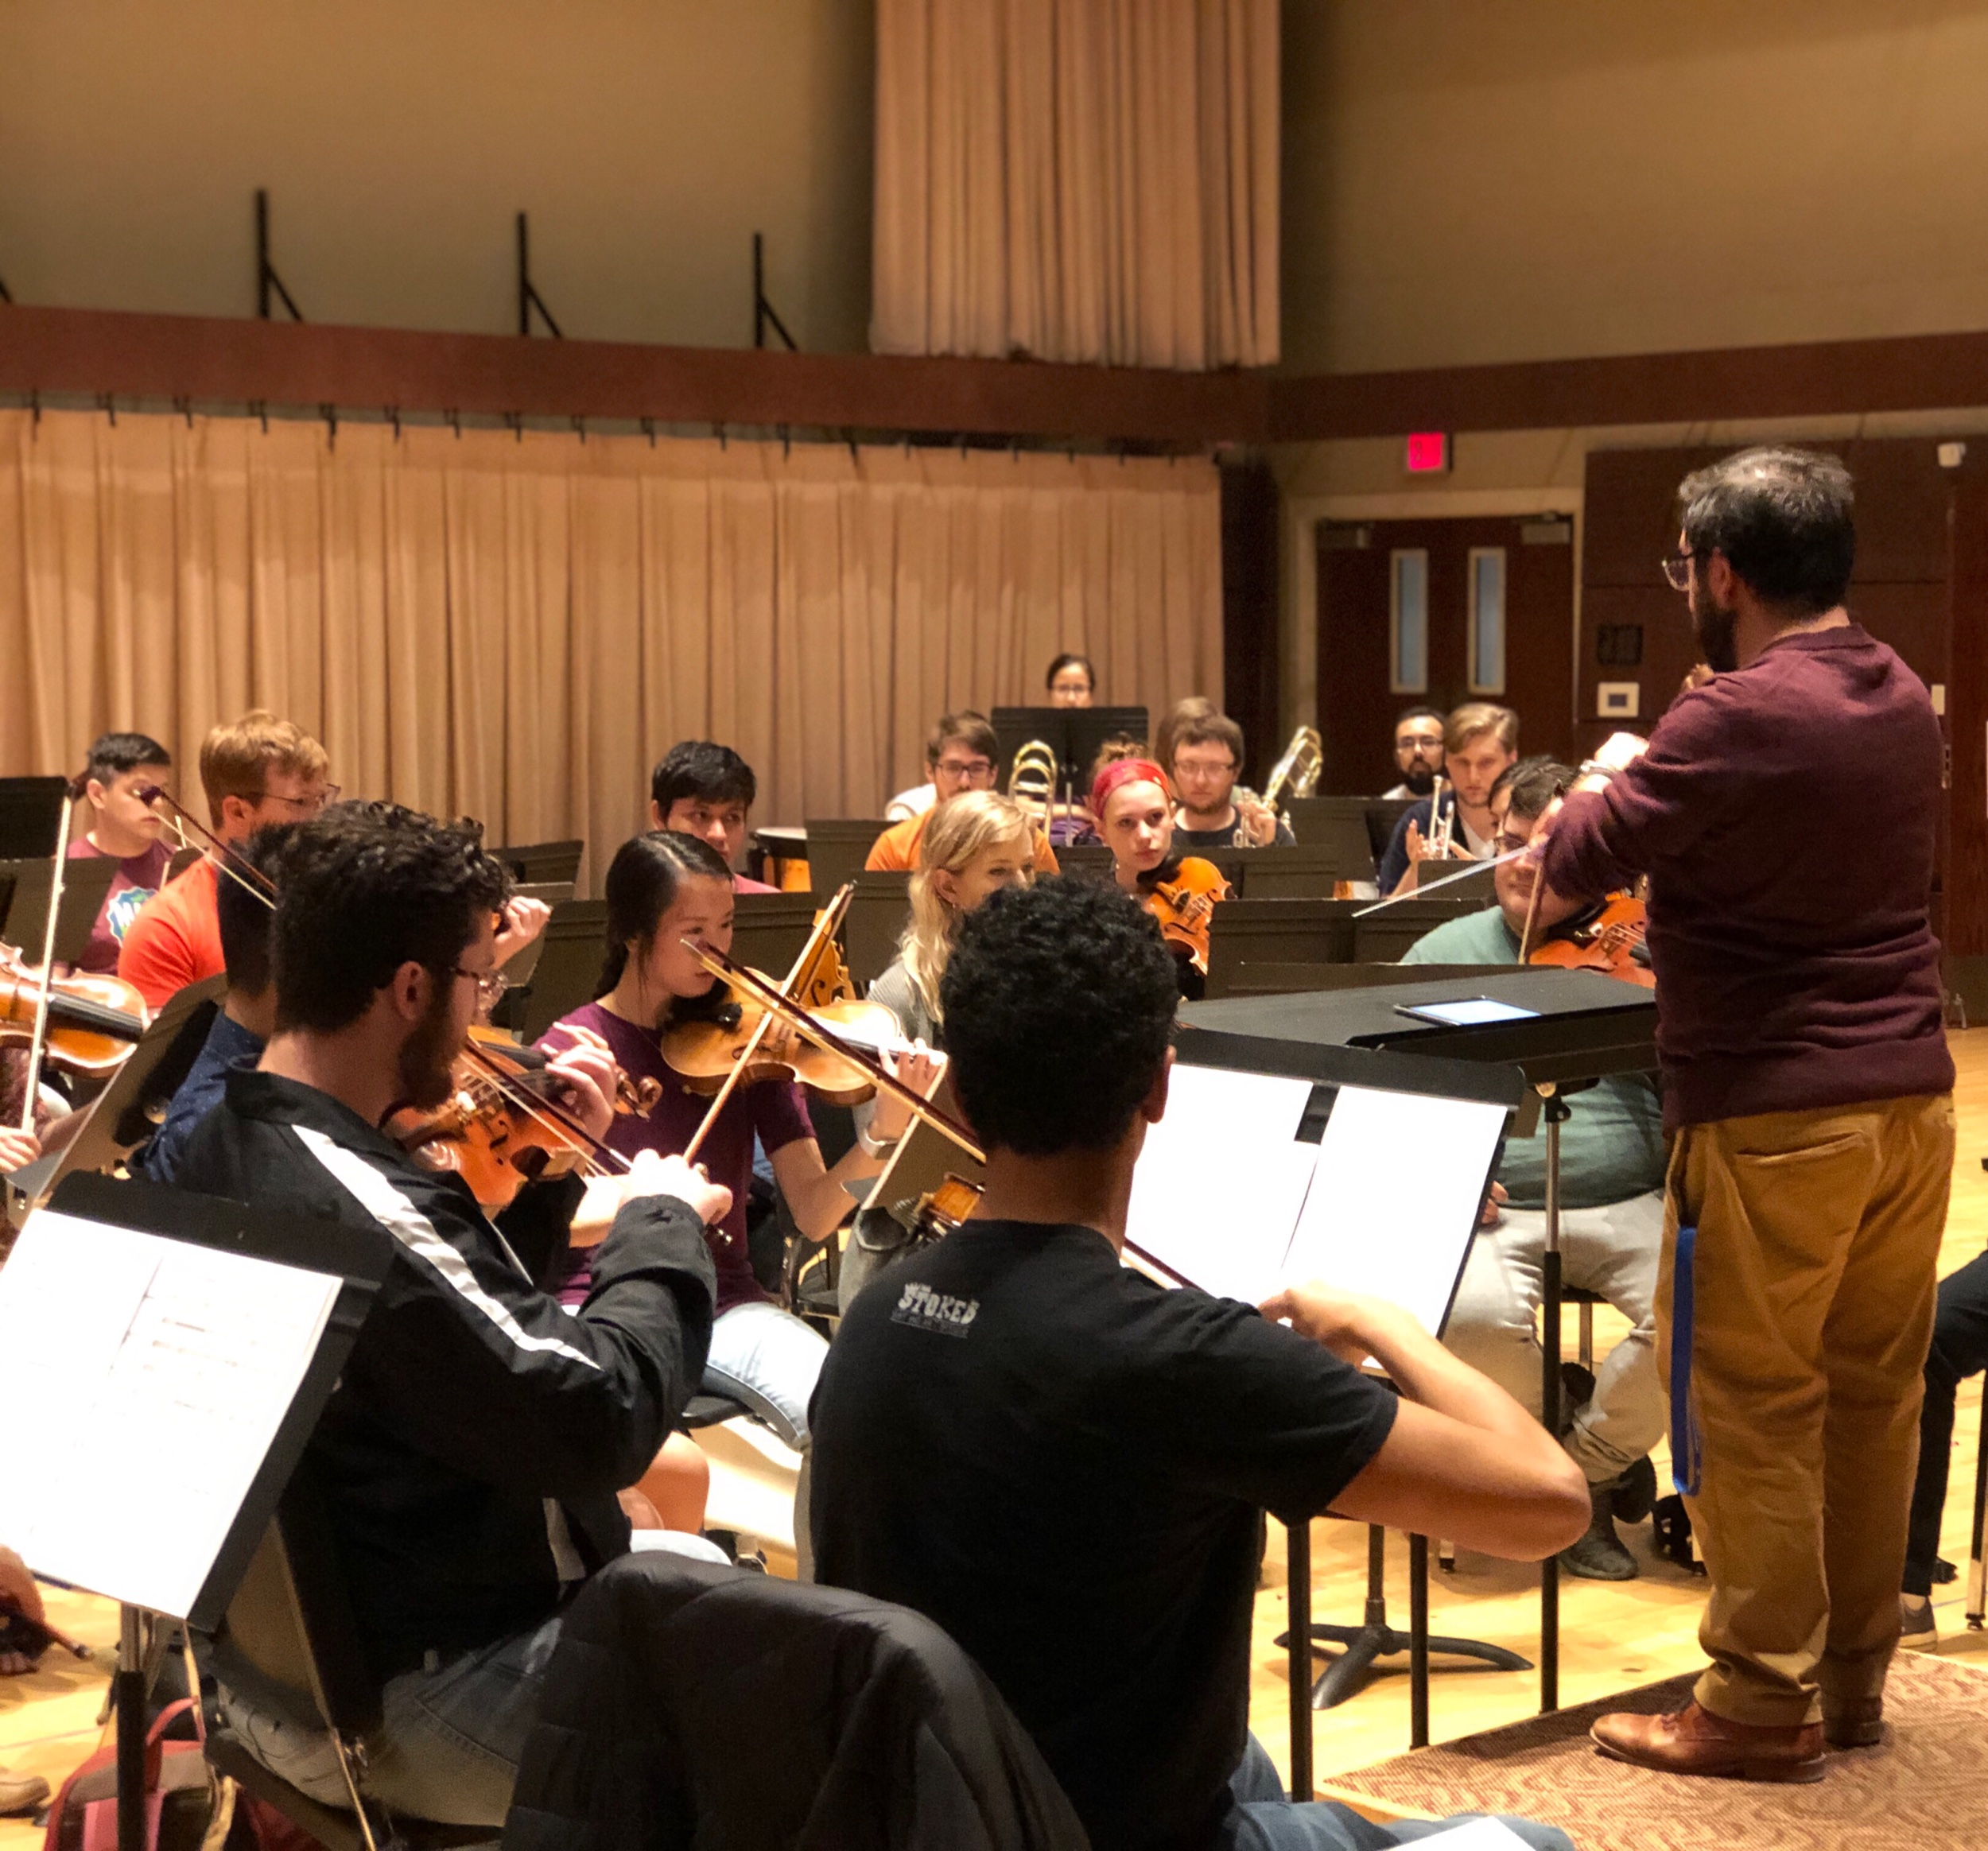 Mathew leads student composer readings as part of the Oklahoma City University Symphony Orchestra New Music Readings in Spring 2019.